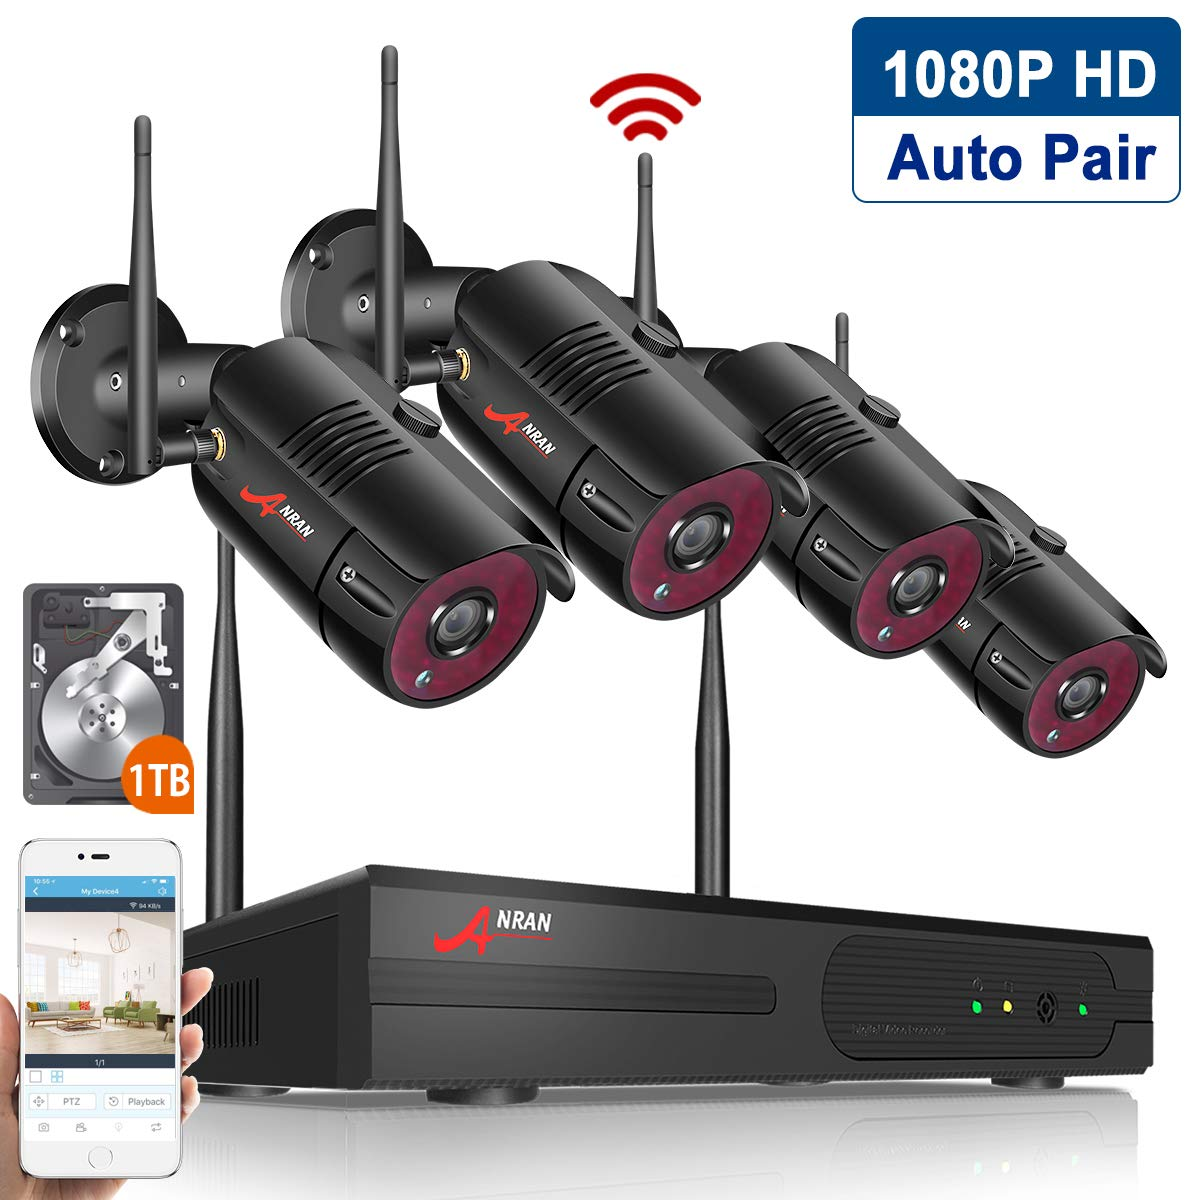 Wireless Home Security Cameras System,4CH 1080P HD NVR Outdoor Surveillance System with 2MP Outdoor IP Security Cameras, P2P Wifi NVR Kits, Night Vision,1TB HDD Pre-installed Easy Remote View by ANRAN by ANRAN